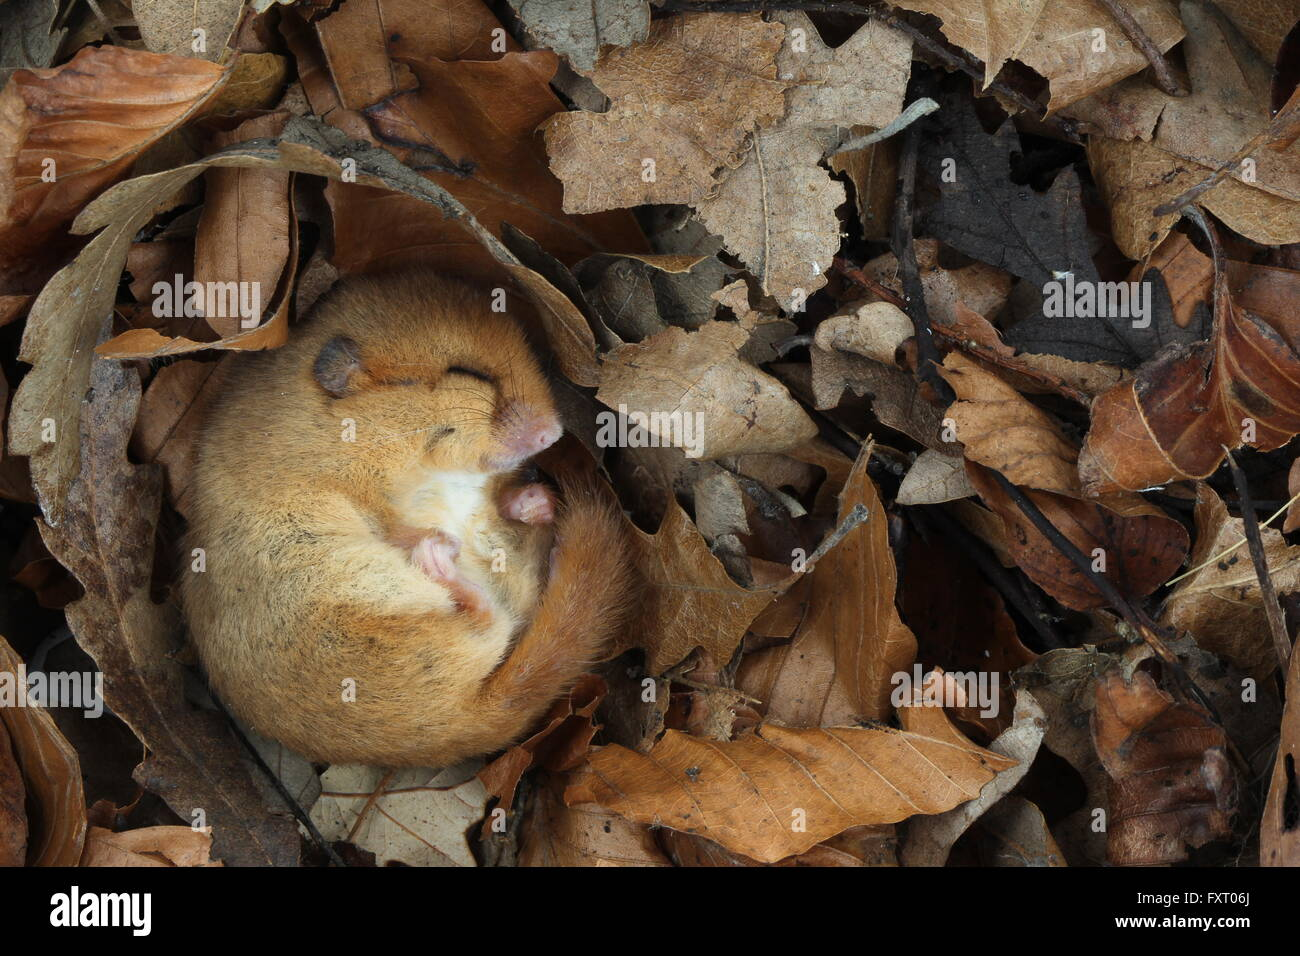 Hazel dormouse, Muscardinus avellanarius uk rodent - Stock Image